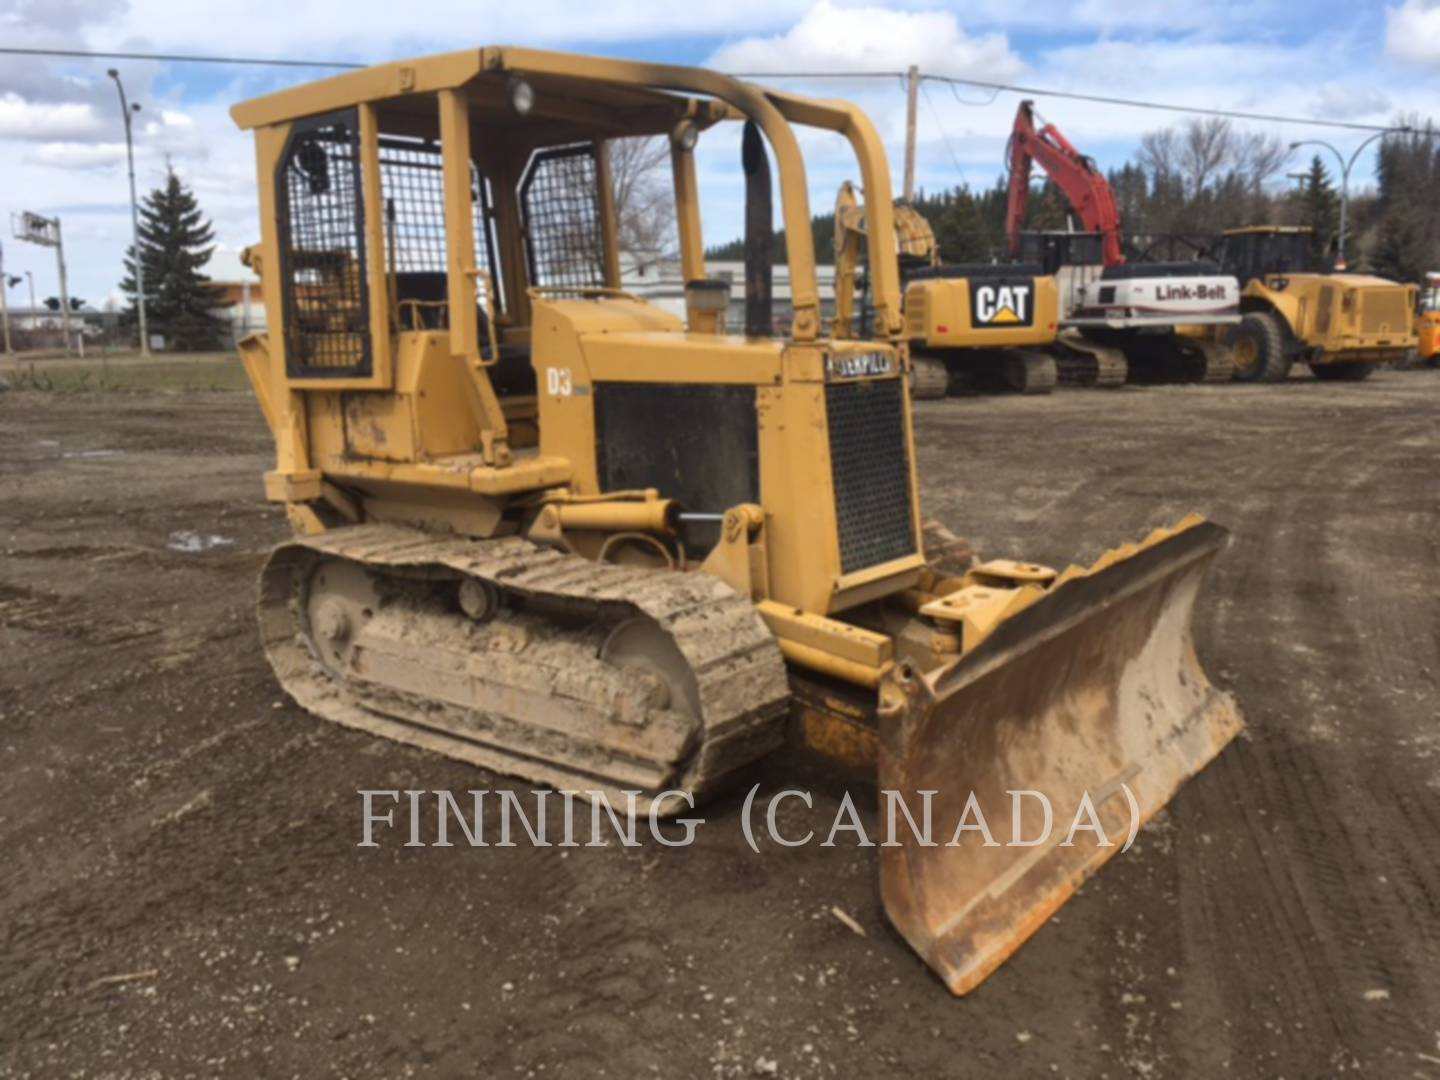 CATERPILLAR D3 1978 sale in United States #933062